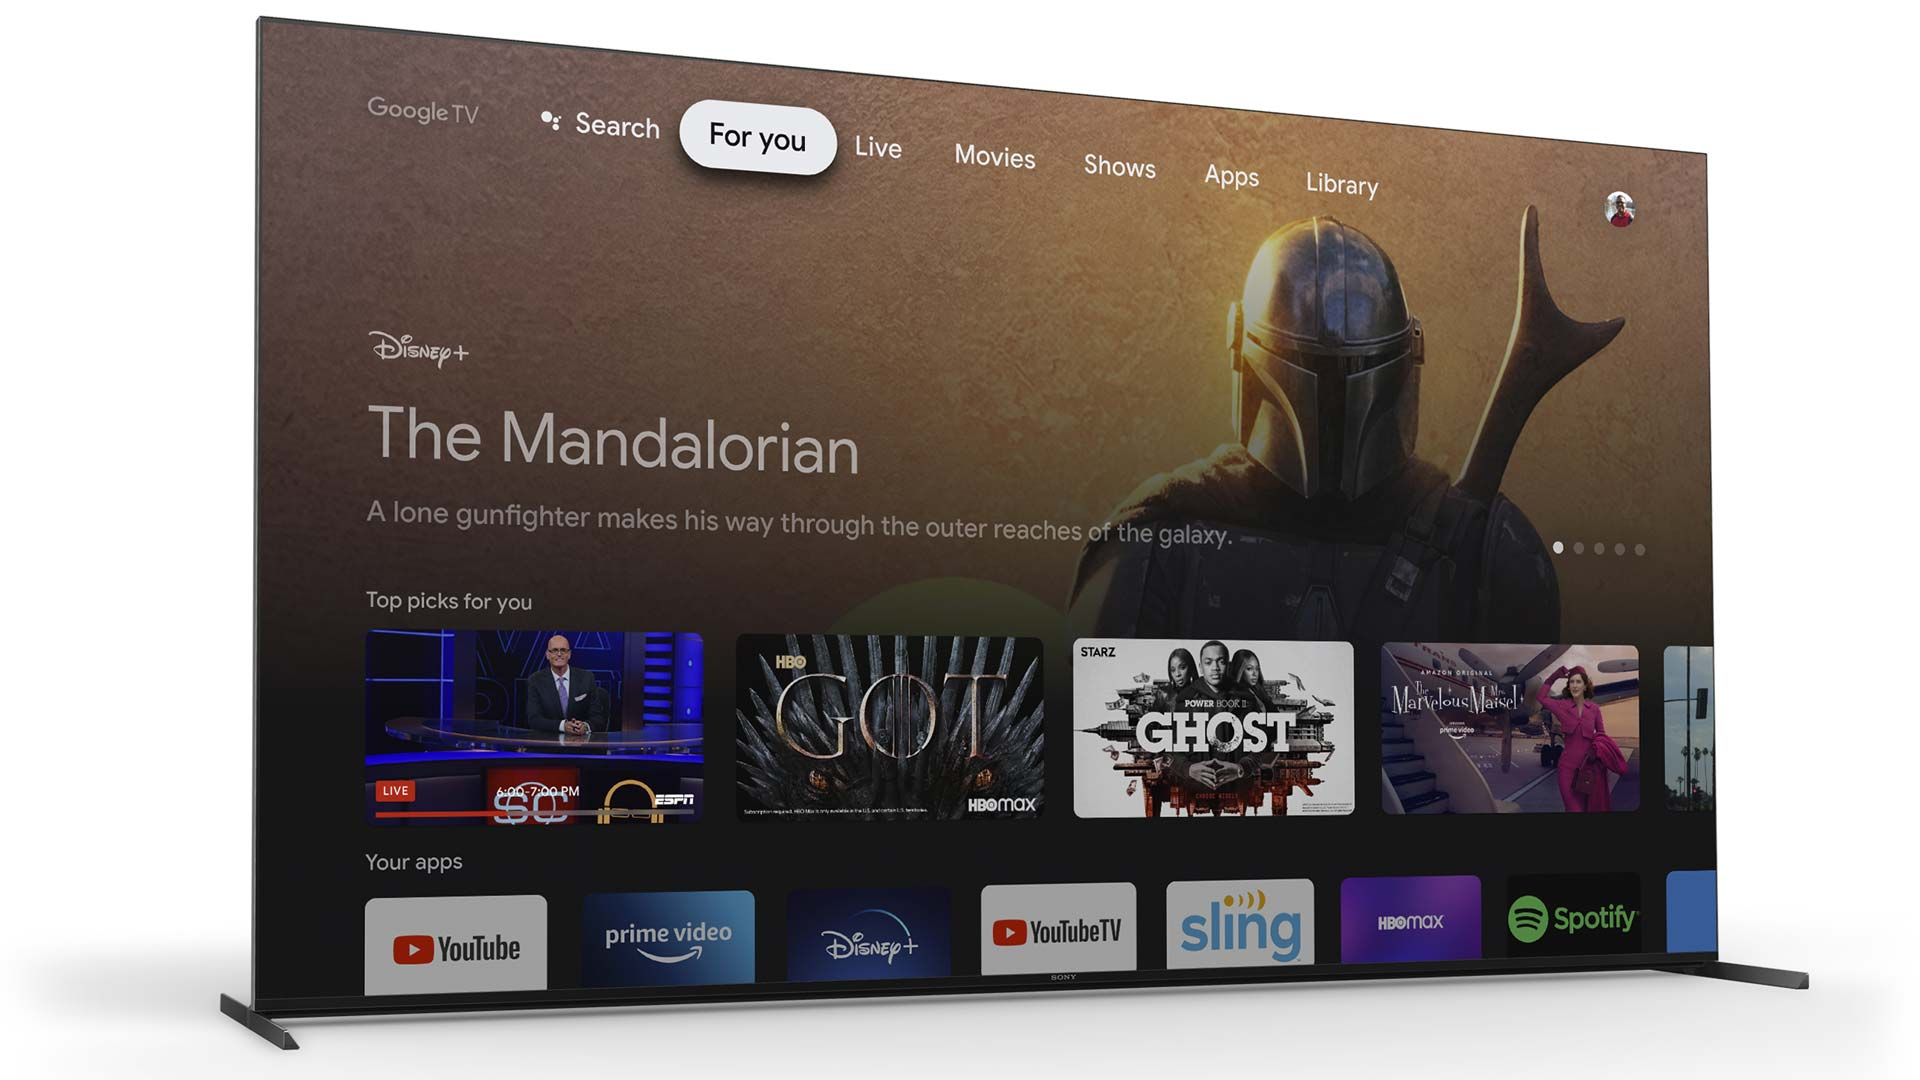 Google TV on Chromecast now autoplays video ads on home screen